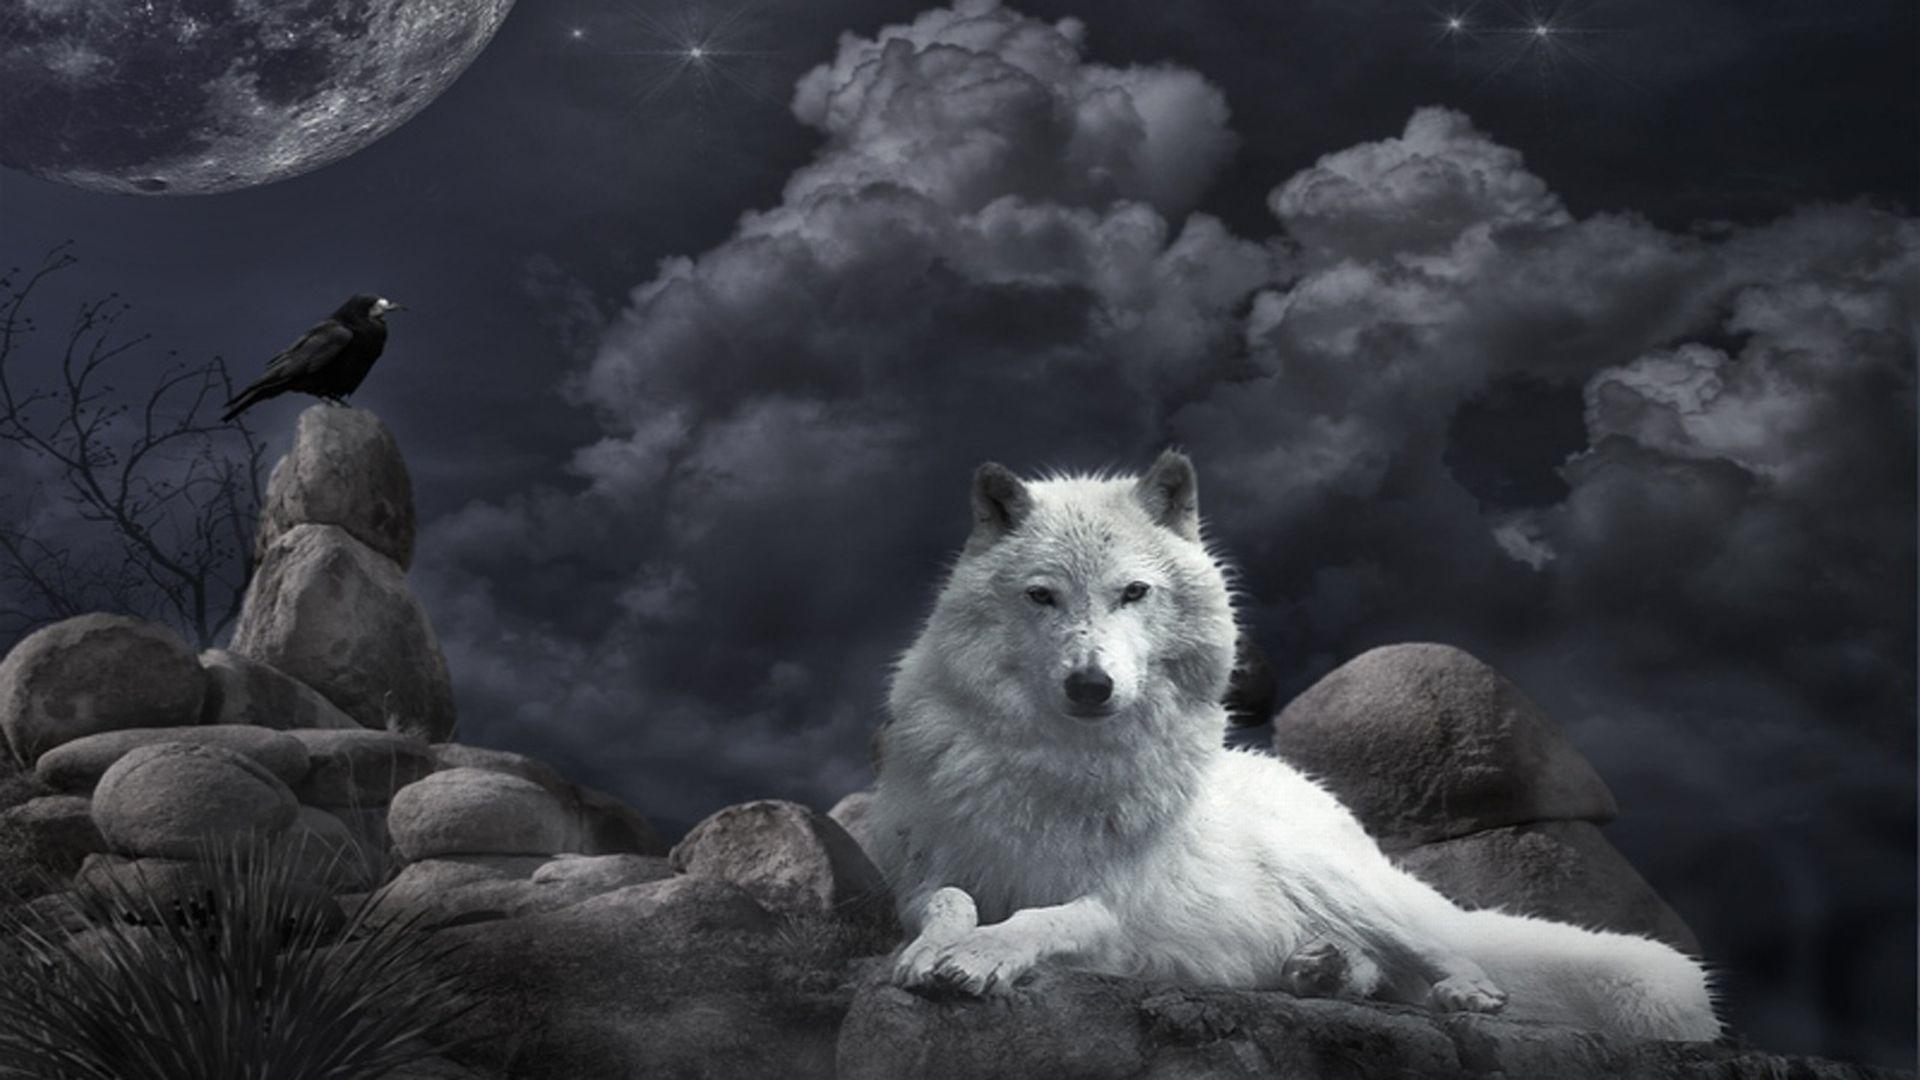 Download Animal Wolf Wallpaper 1920x1080 | Wallpoper #213238